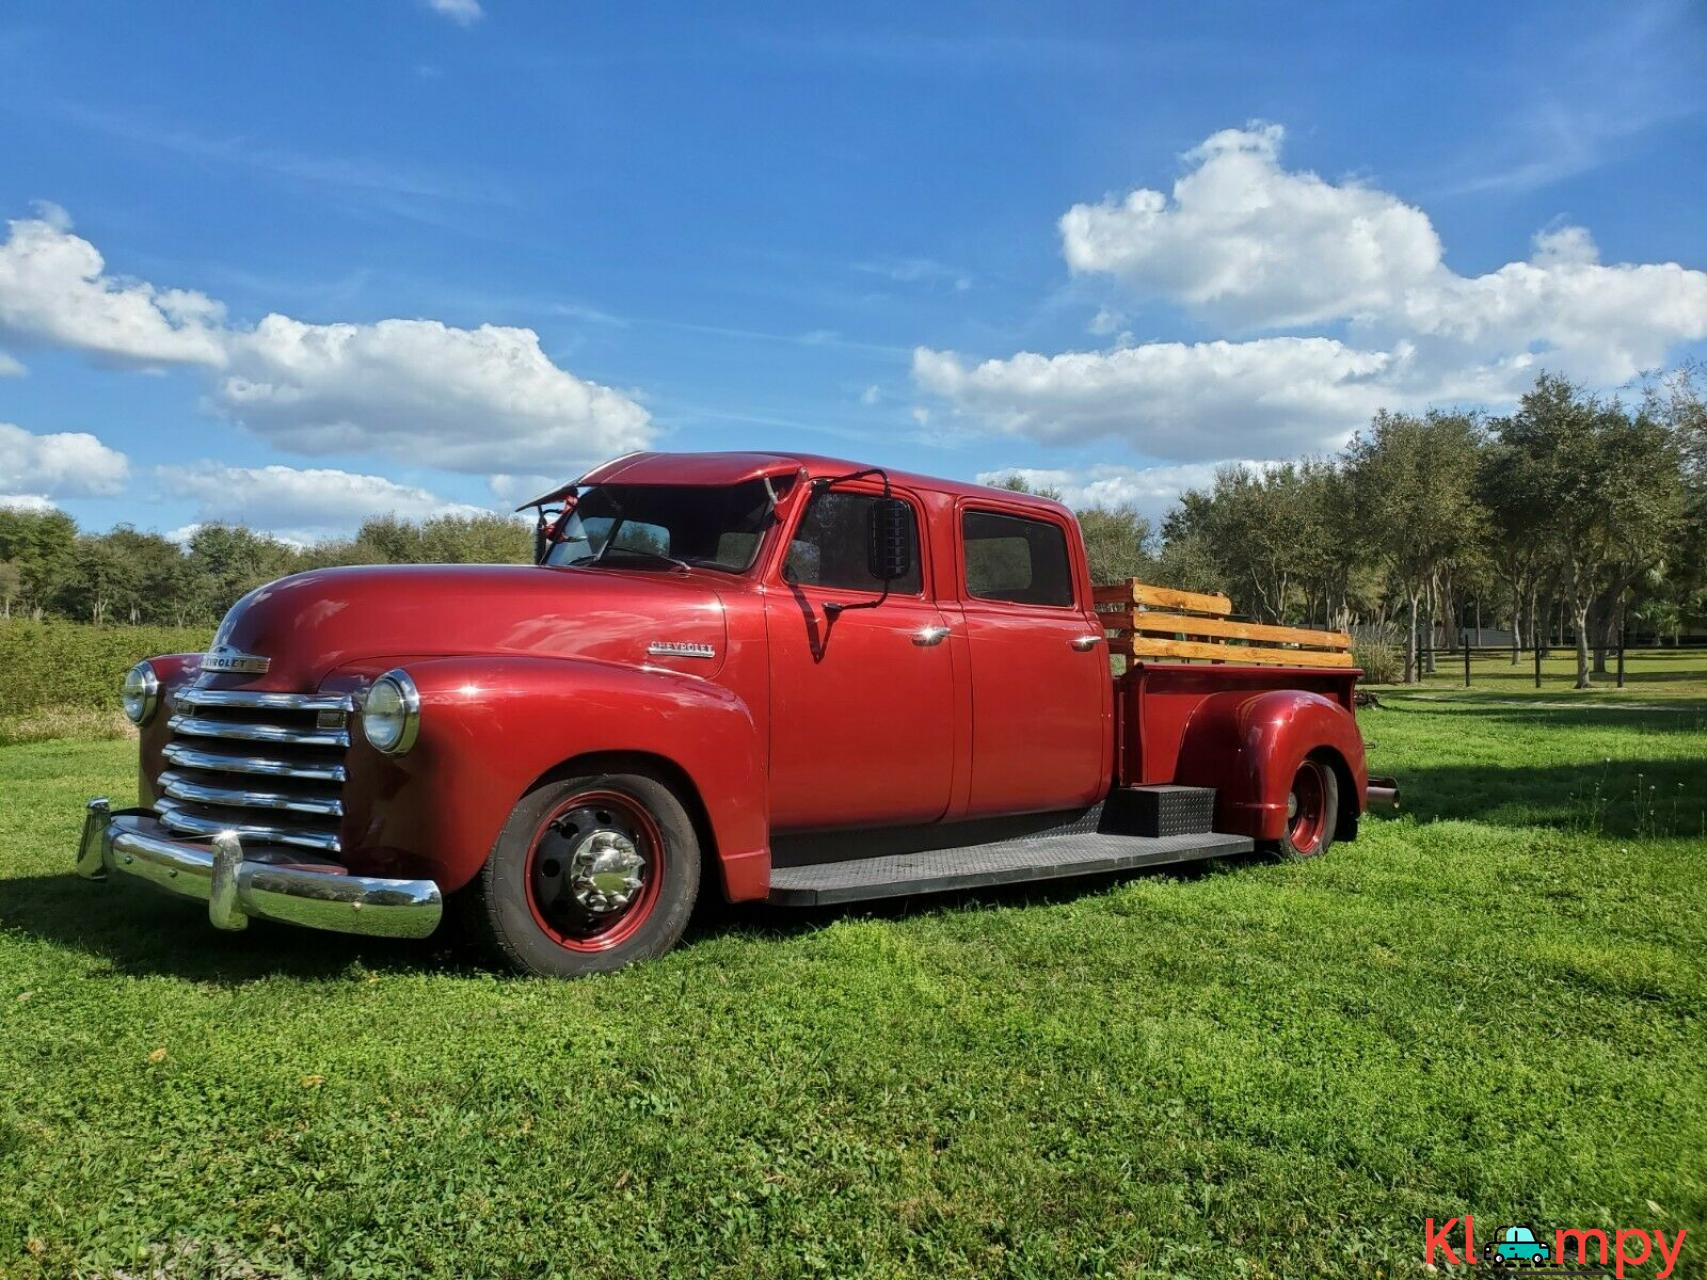 1949 Chevrolet Other Crewcab Diesel Dually - 3/14